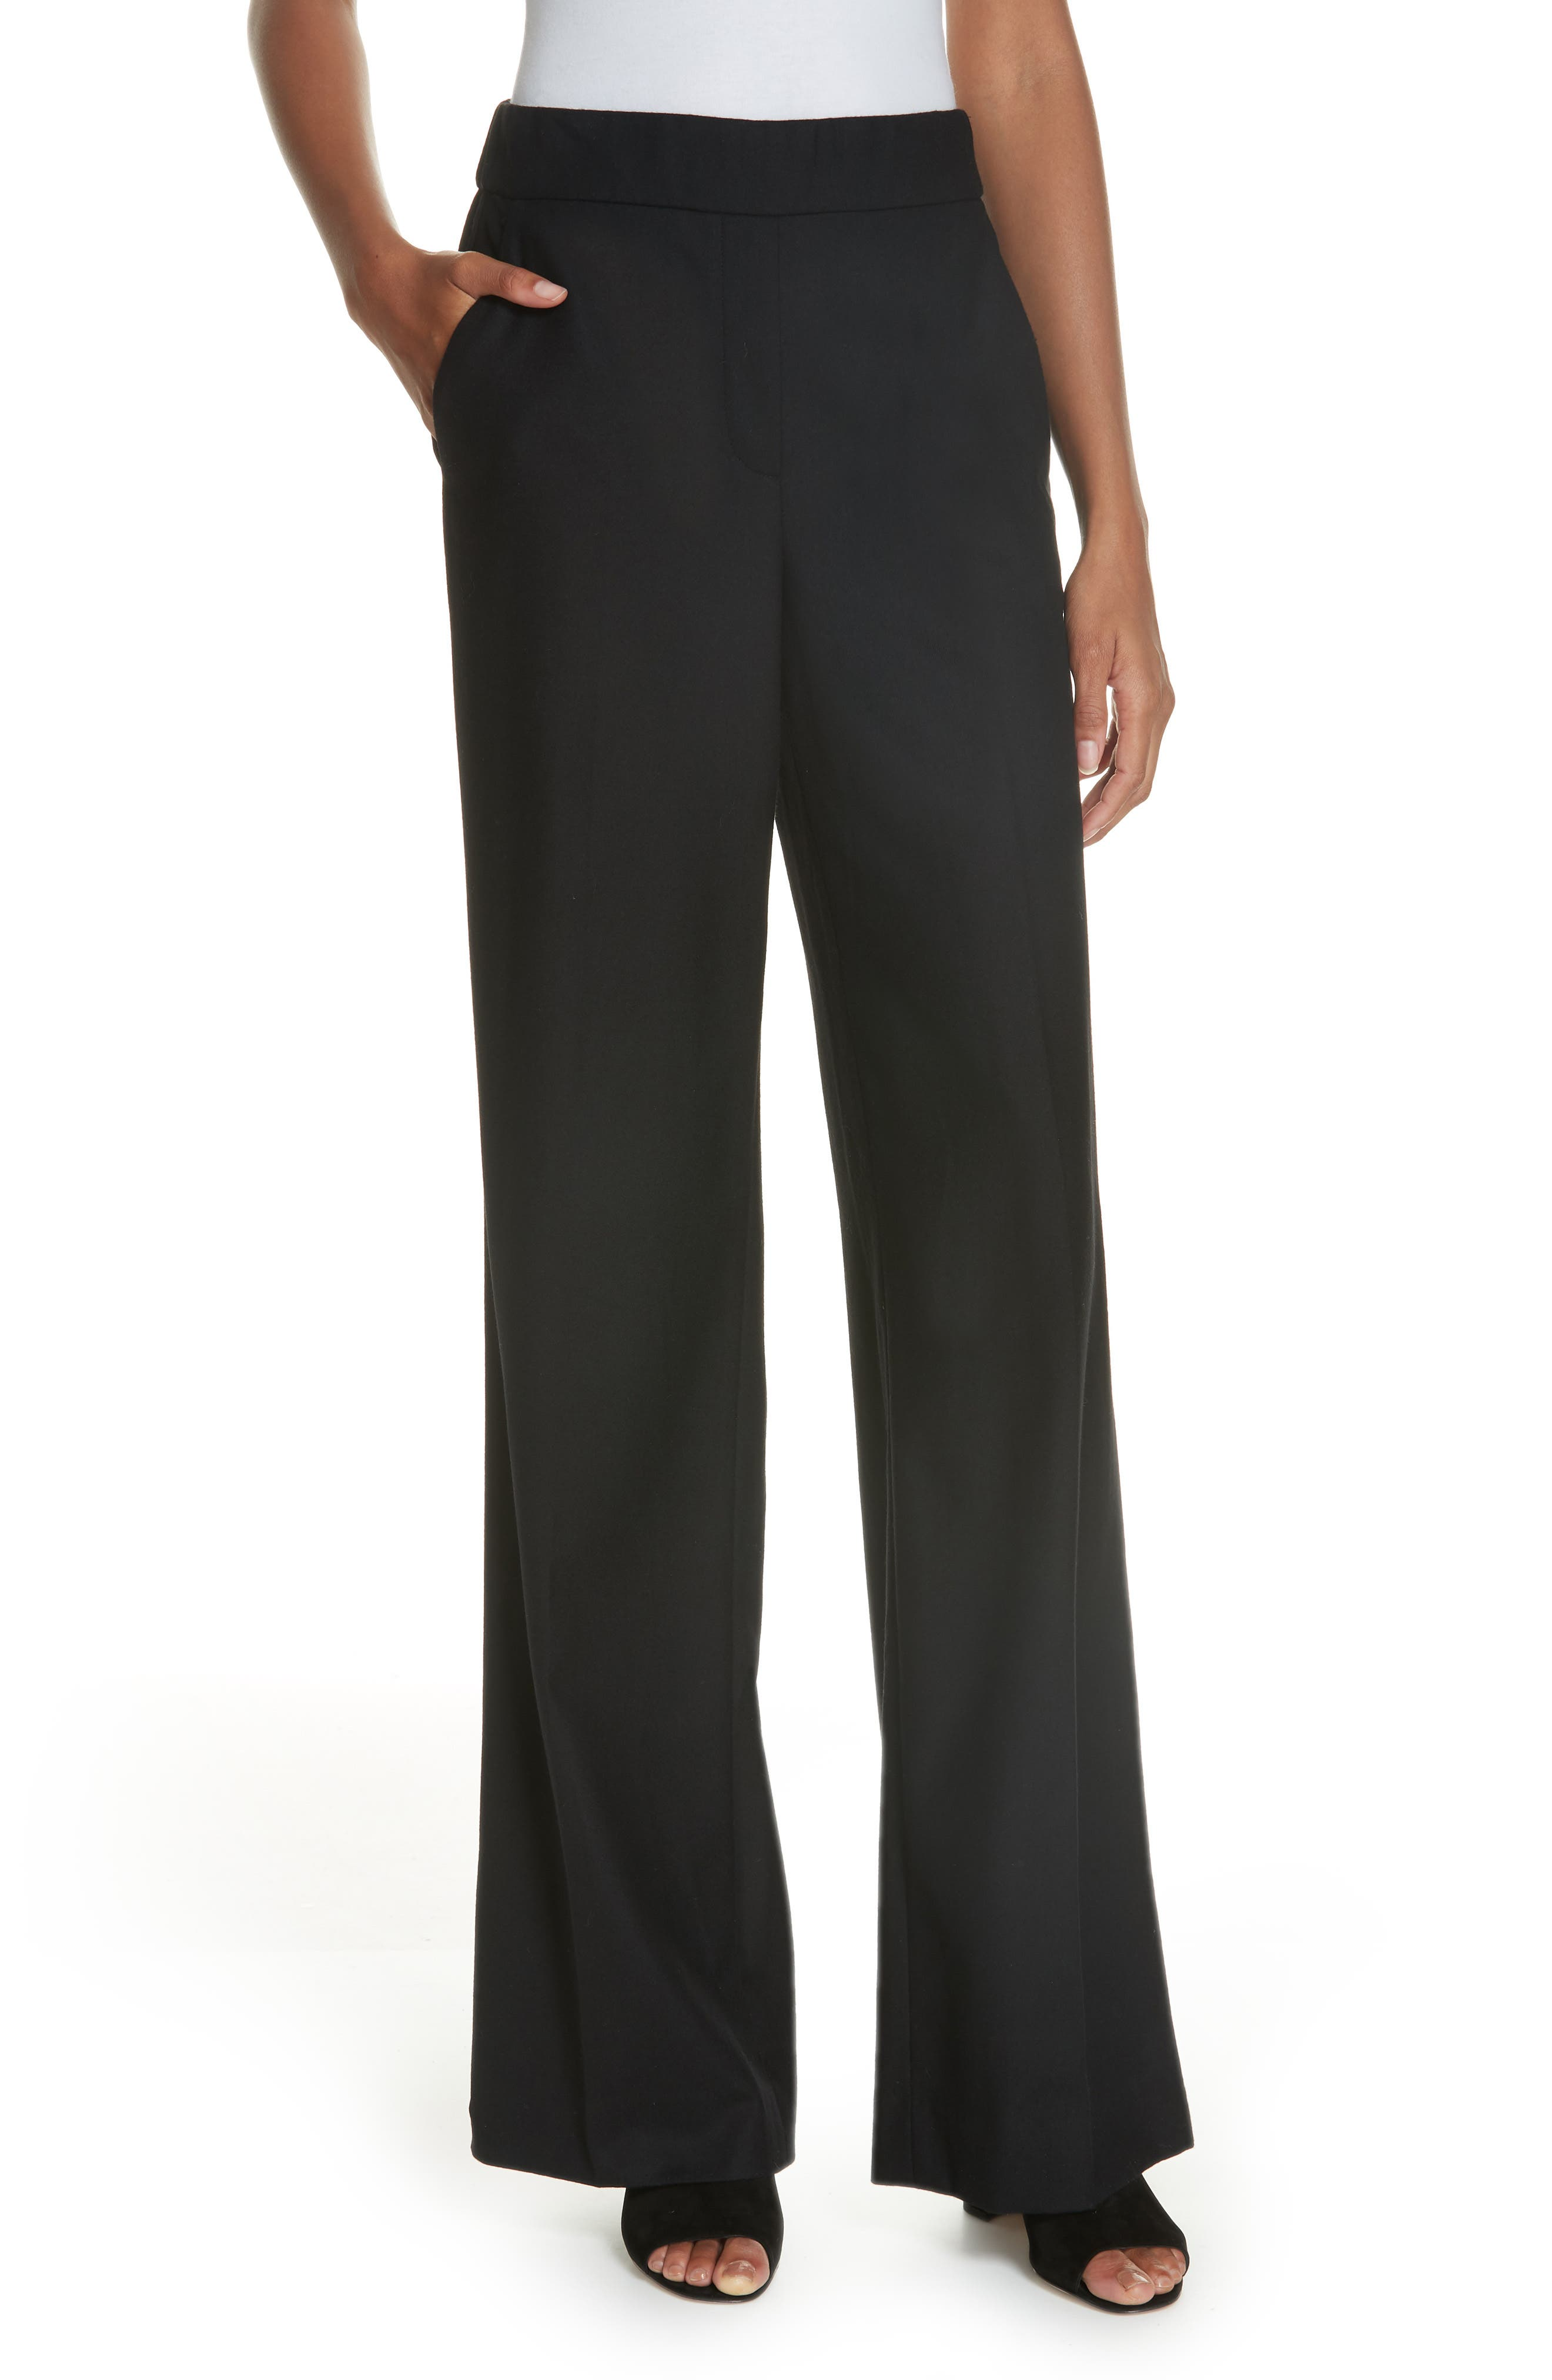 Talbert New Pure Stretch Wool Flare Leg Pants,                             Main thumbnail 1, color,                             001